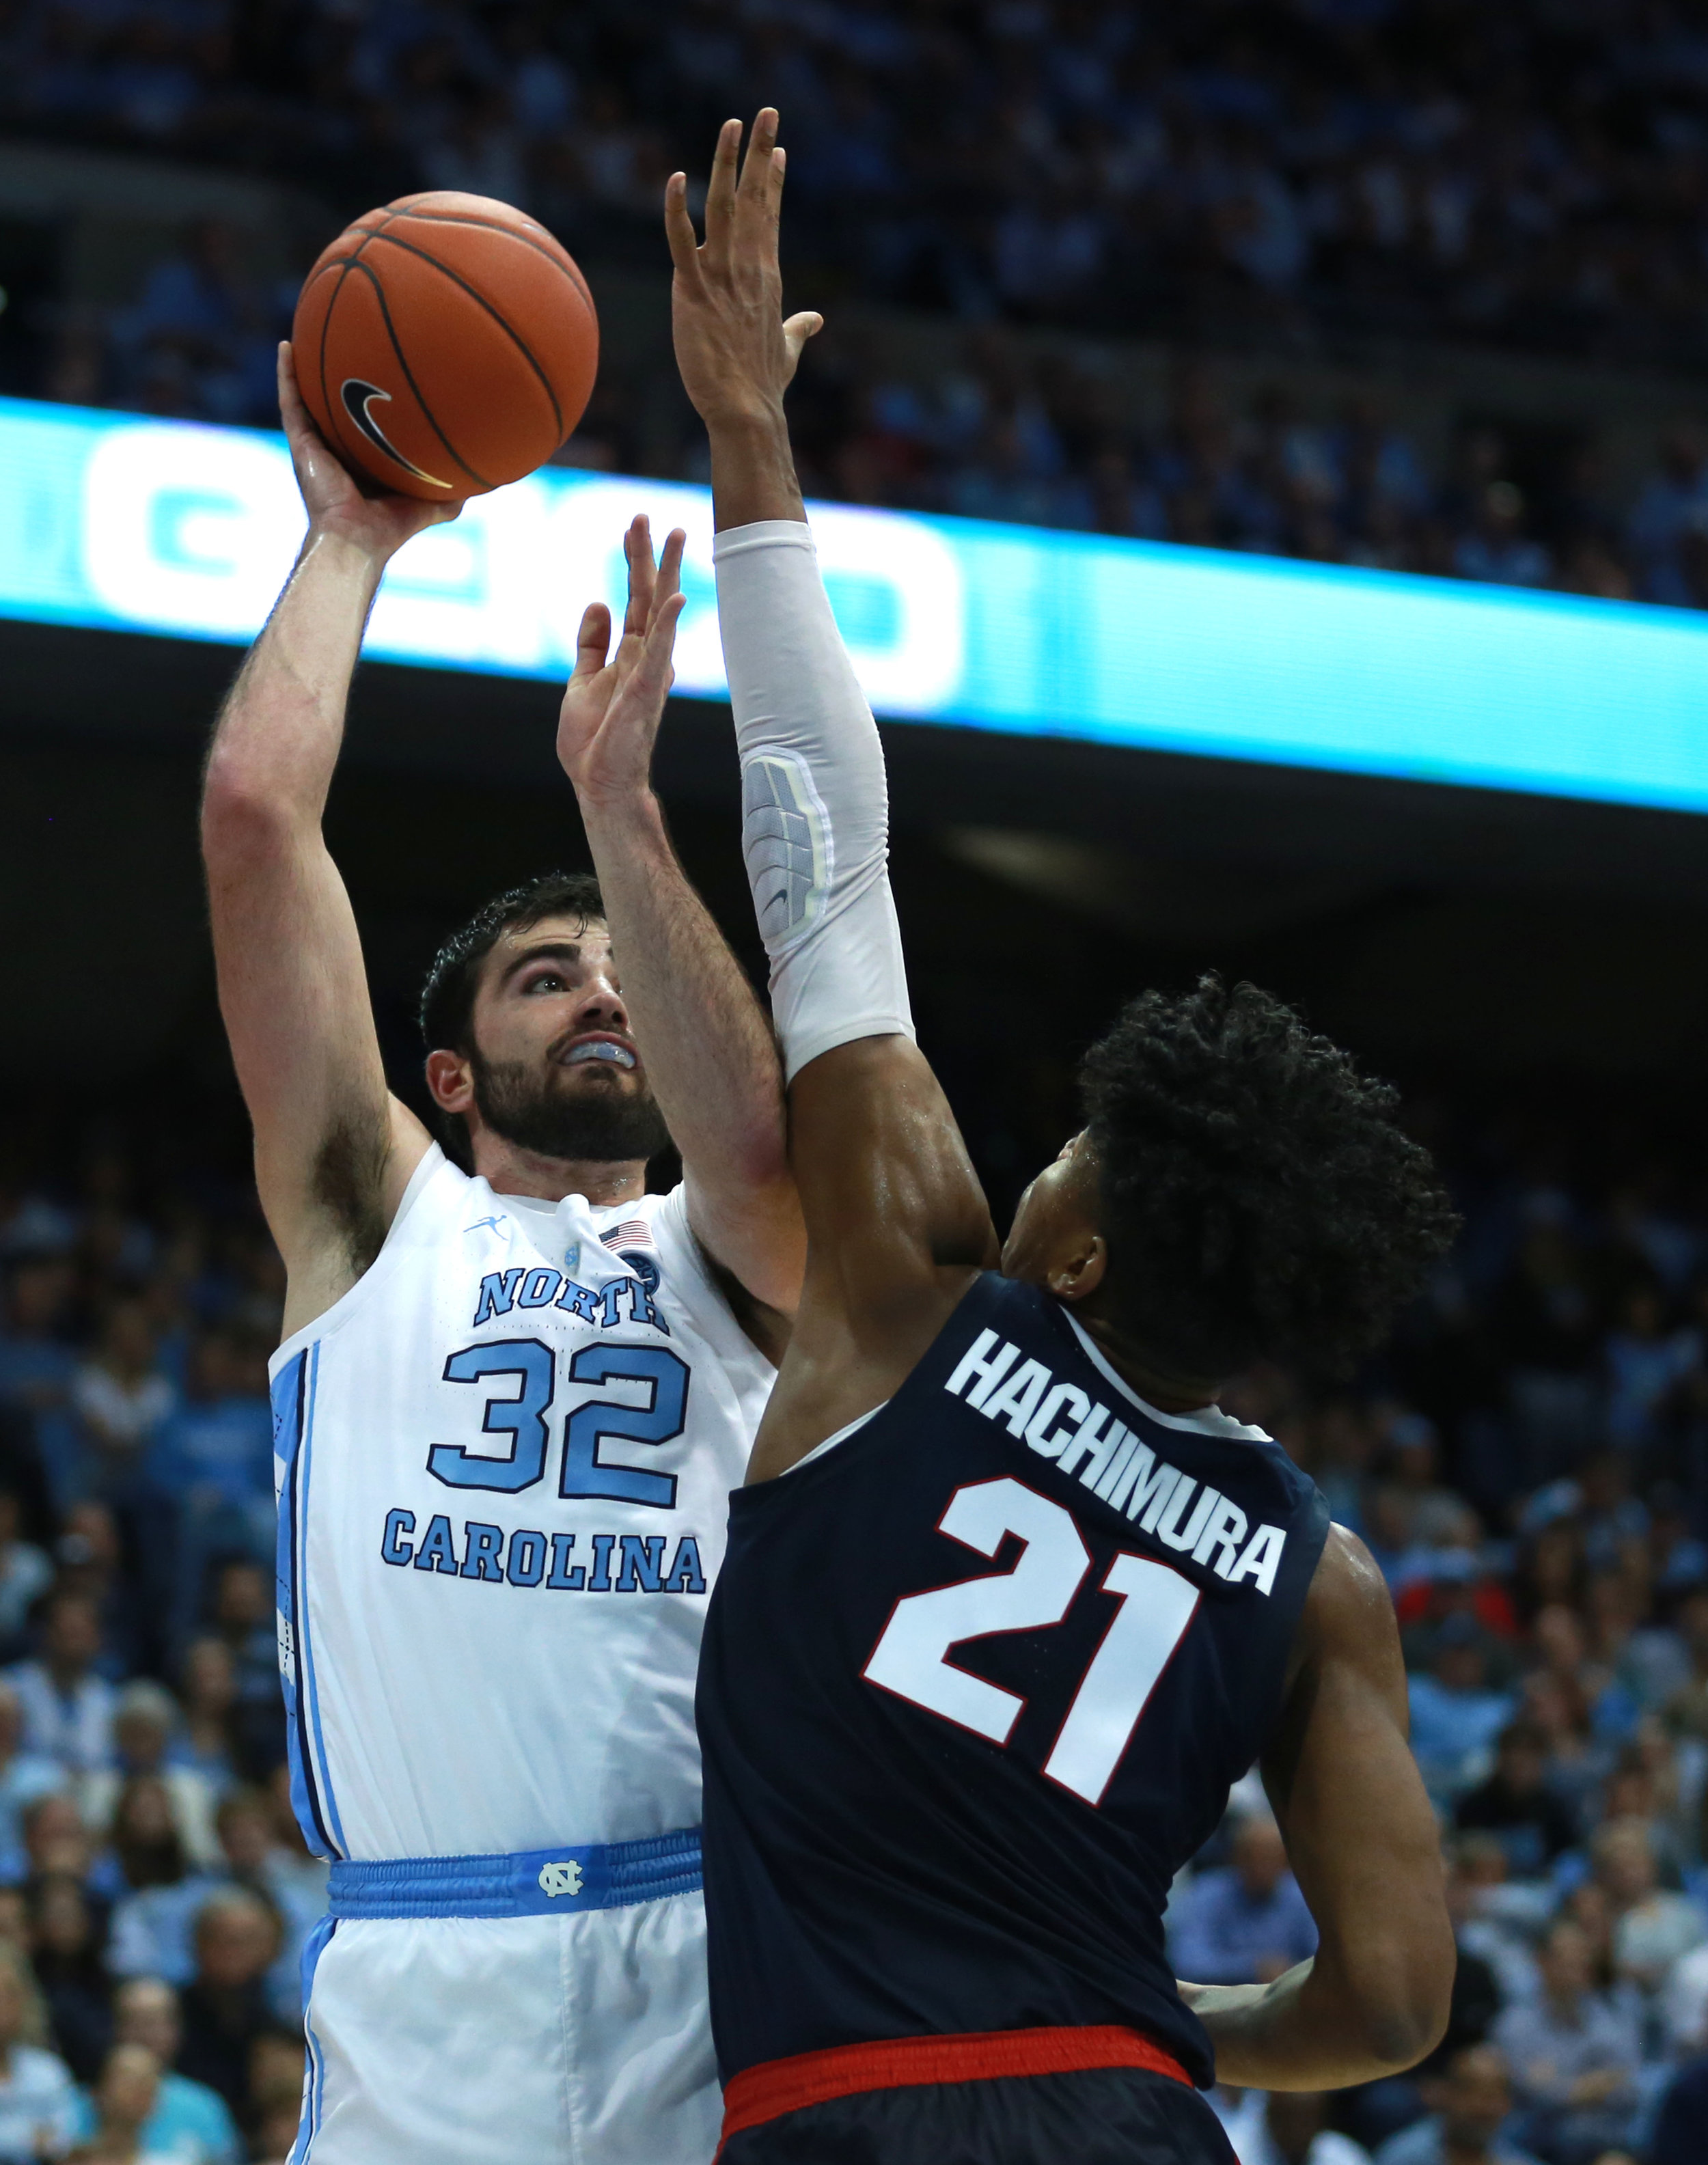 Luke Maye returned to form with a 20-point night, including scoring his 1000th point as a Tar Heel. But his 16 rebounds is where his impact was most felt on the court. | Photo by Alex Kormann